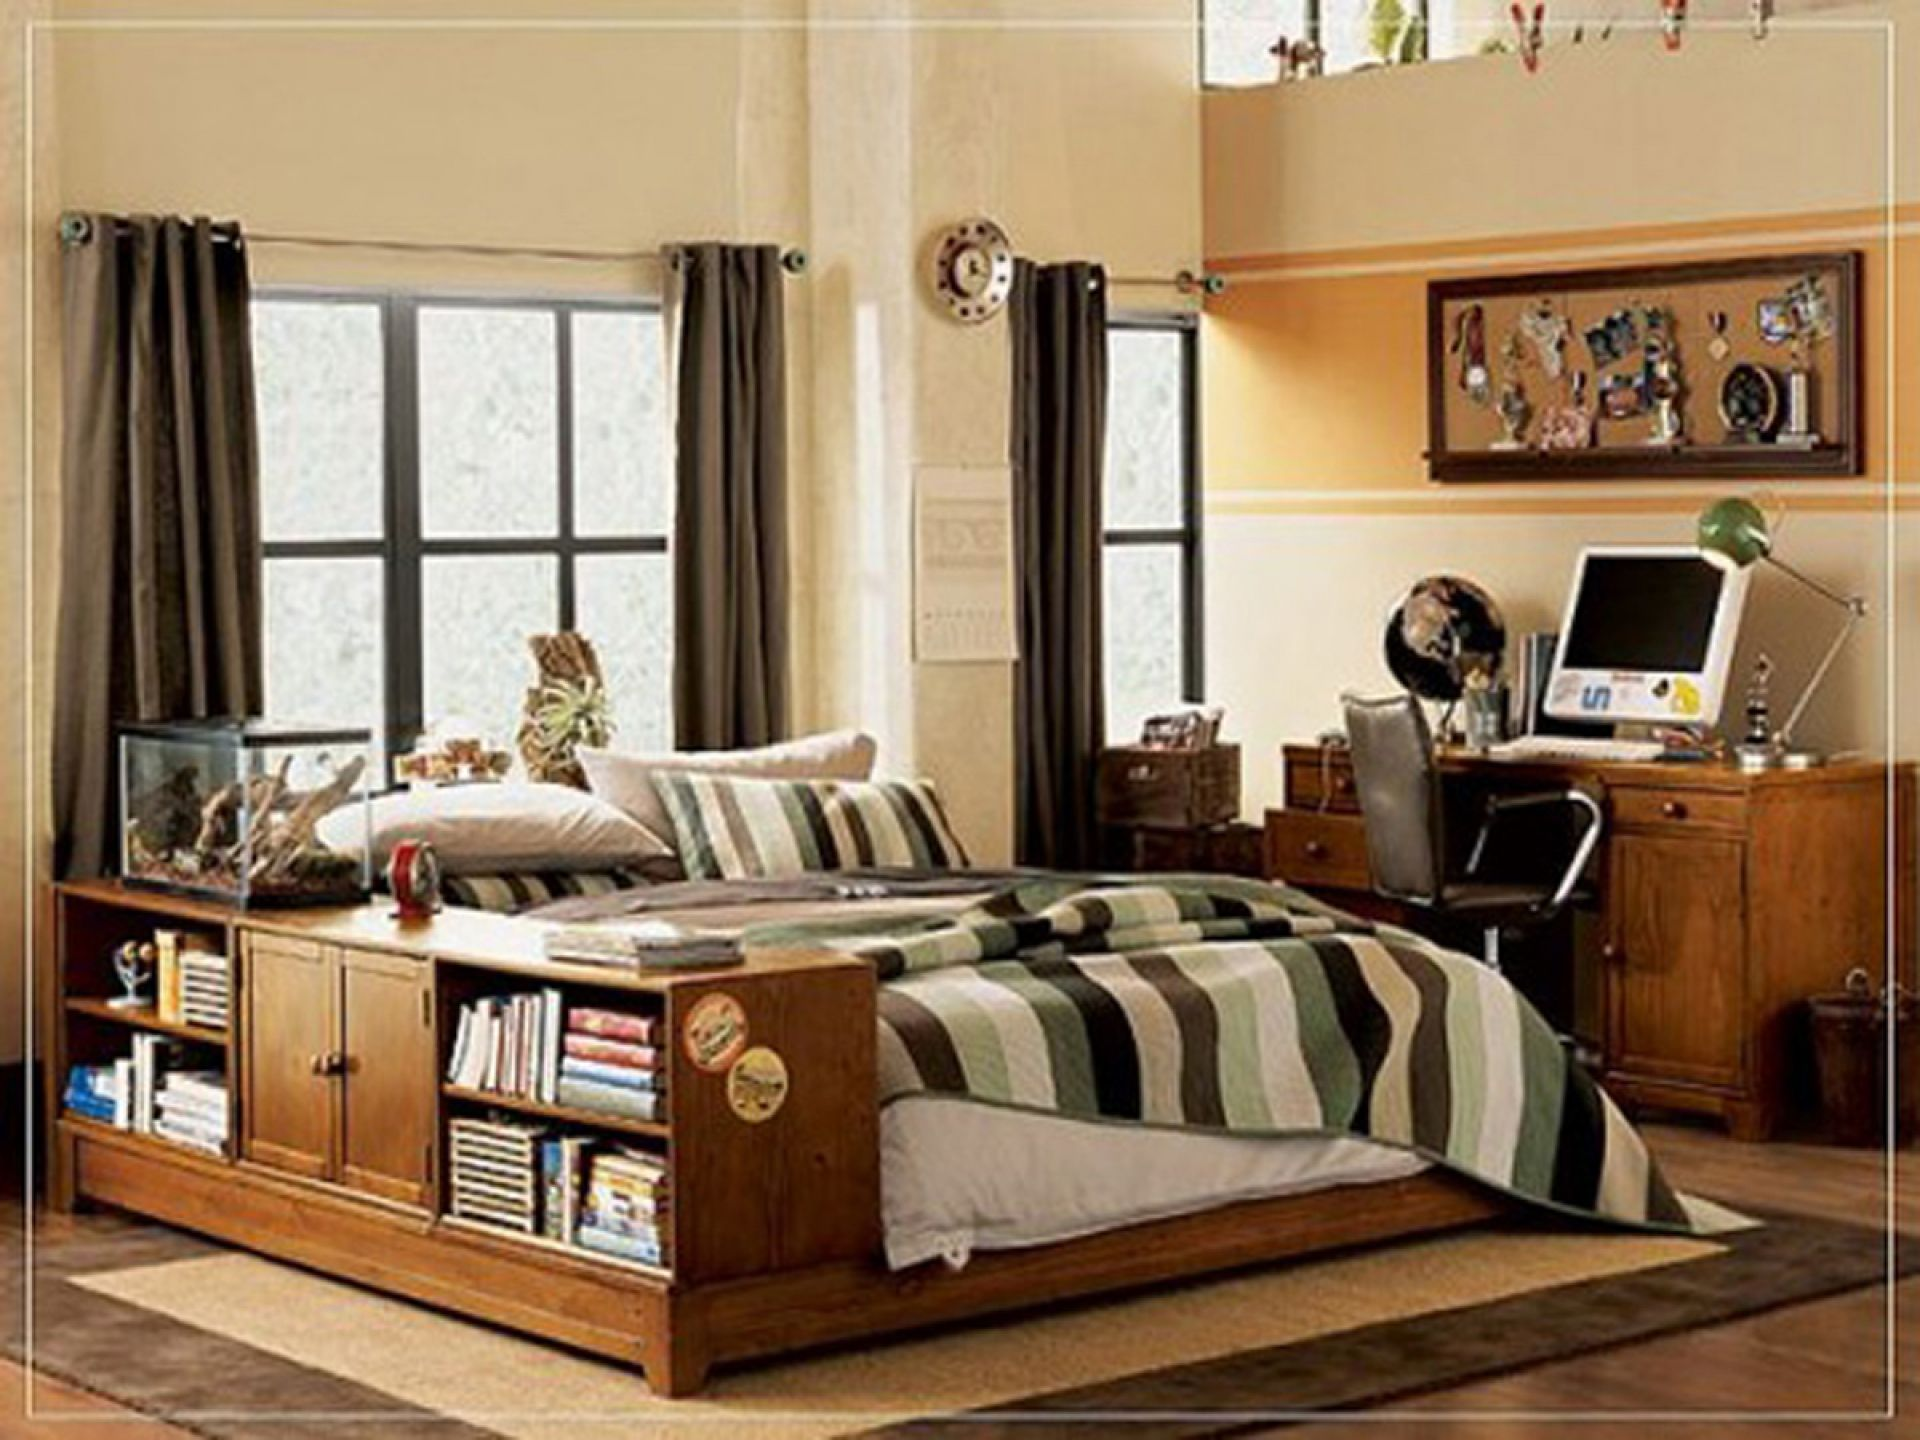 Image result for decor young man bedroom ideas pinterest ...